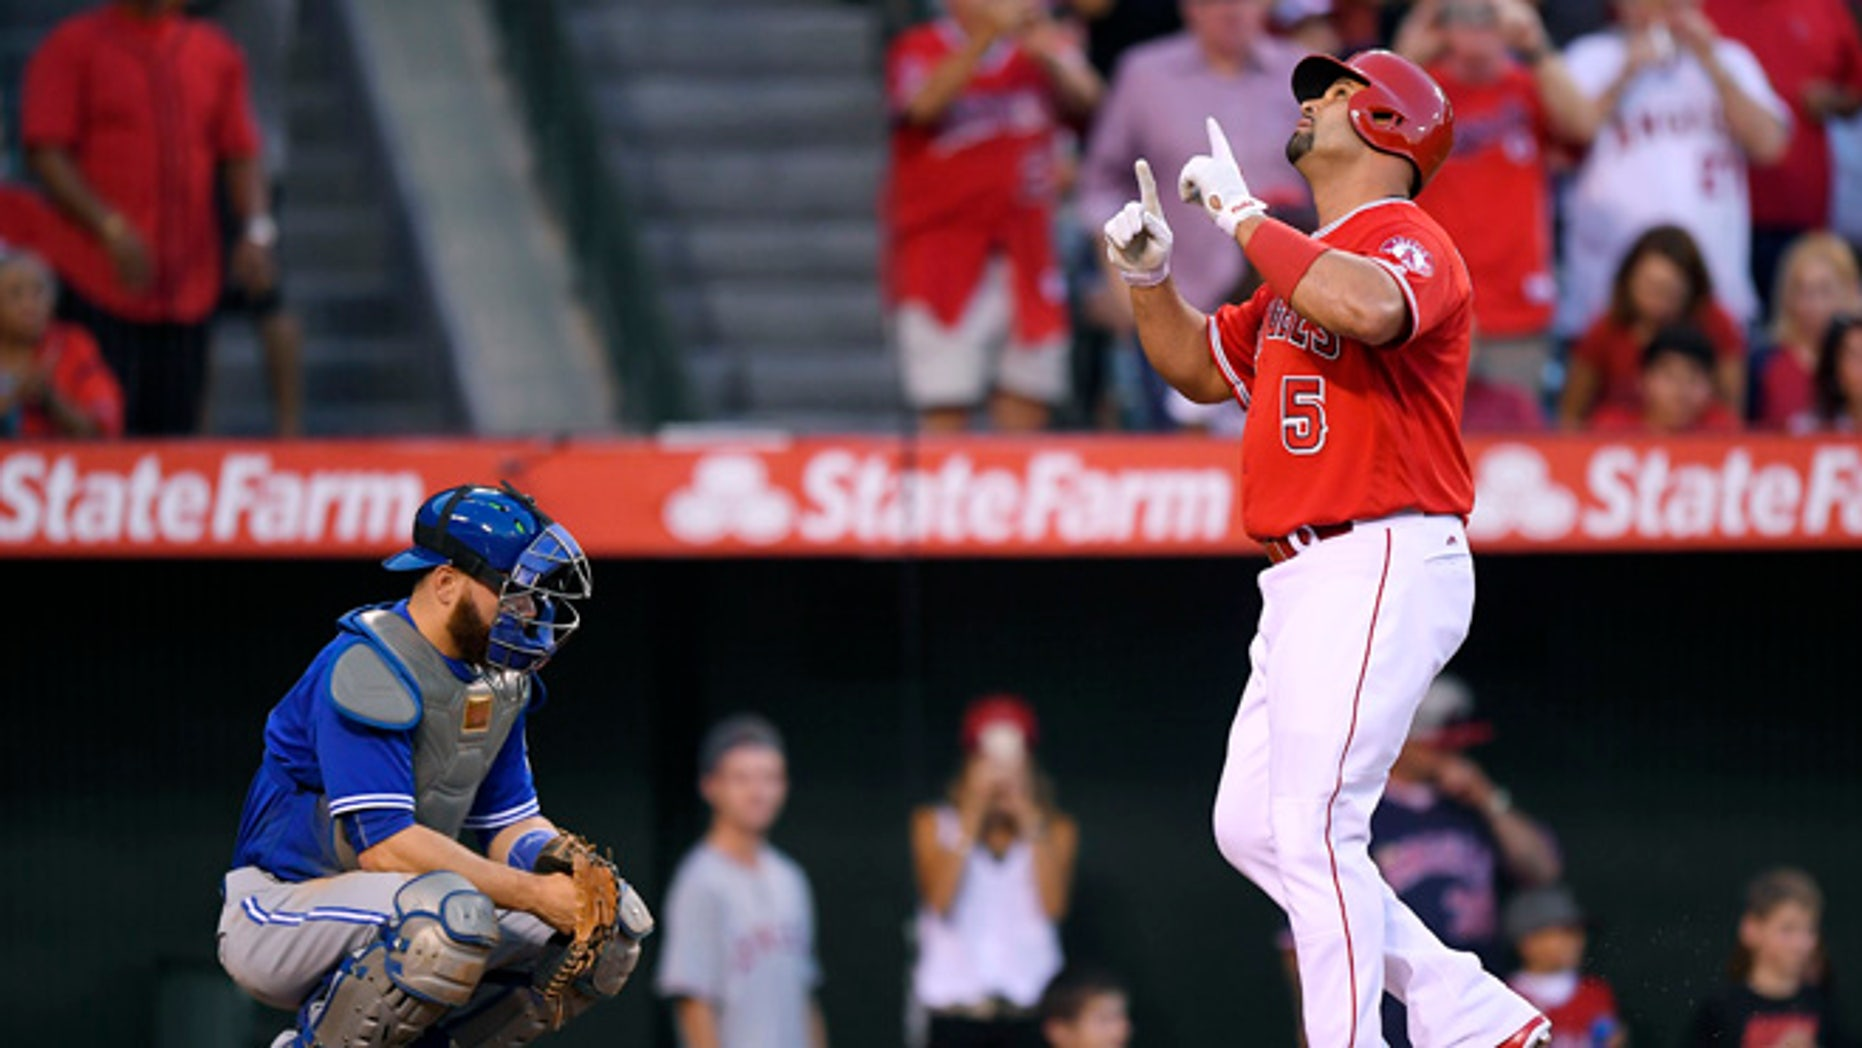 Los Angeles Angels' Albert Pujols, right, points to the sky as he scores after hitting a solo home run as Toronto Blue Jays catcher Russell Martin kneels at the plate during the second inning of a baseball game, Saturday, Sept. 17, 2016, in Anaheim, Calif. (AP Photo/Mark J. Terrill)